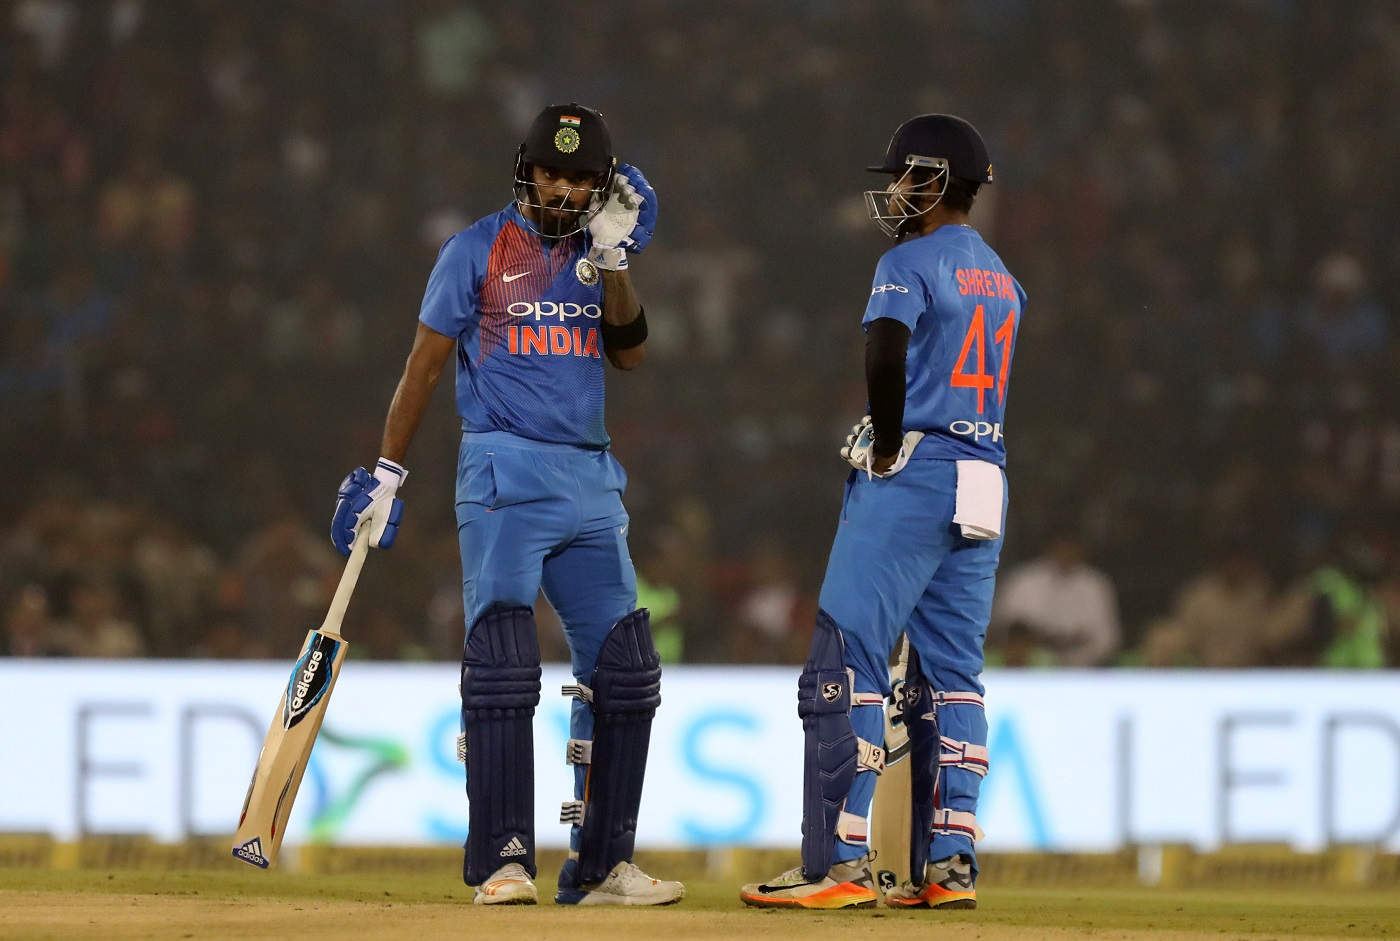 KL Rahul and Shreyas Iyer might get a look in for the Asia Cup tournament